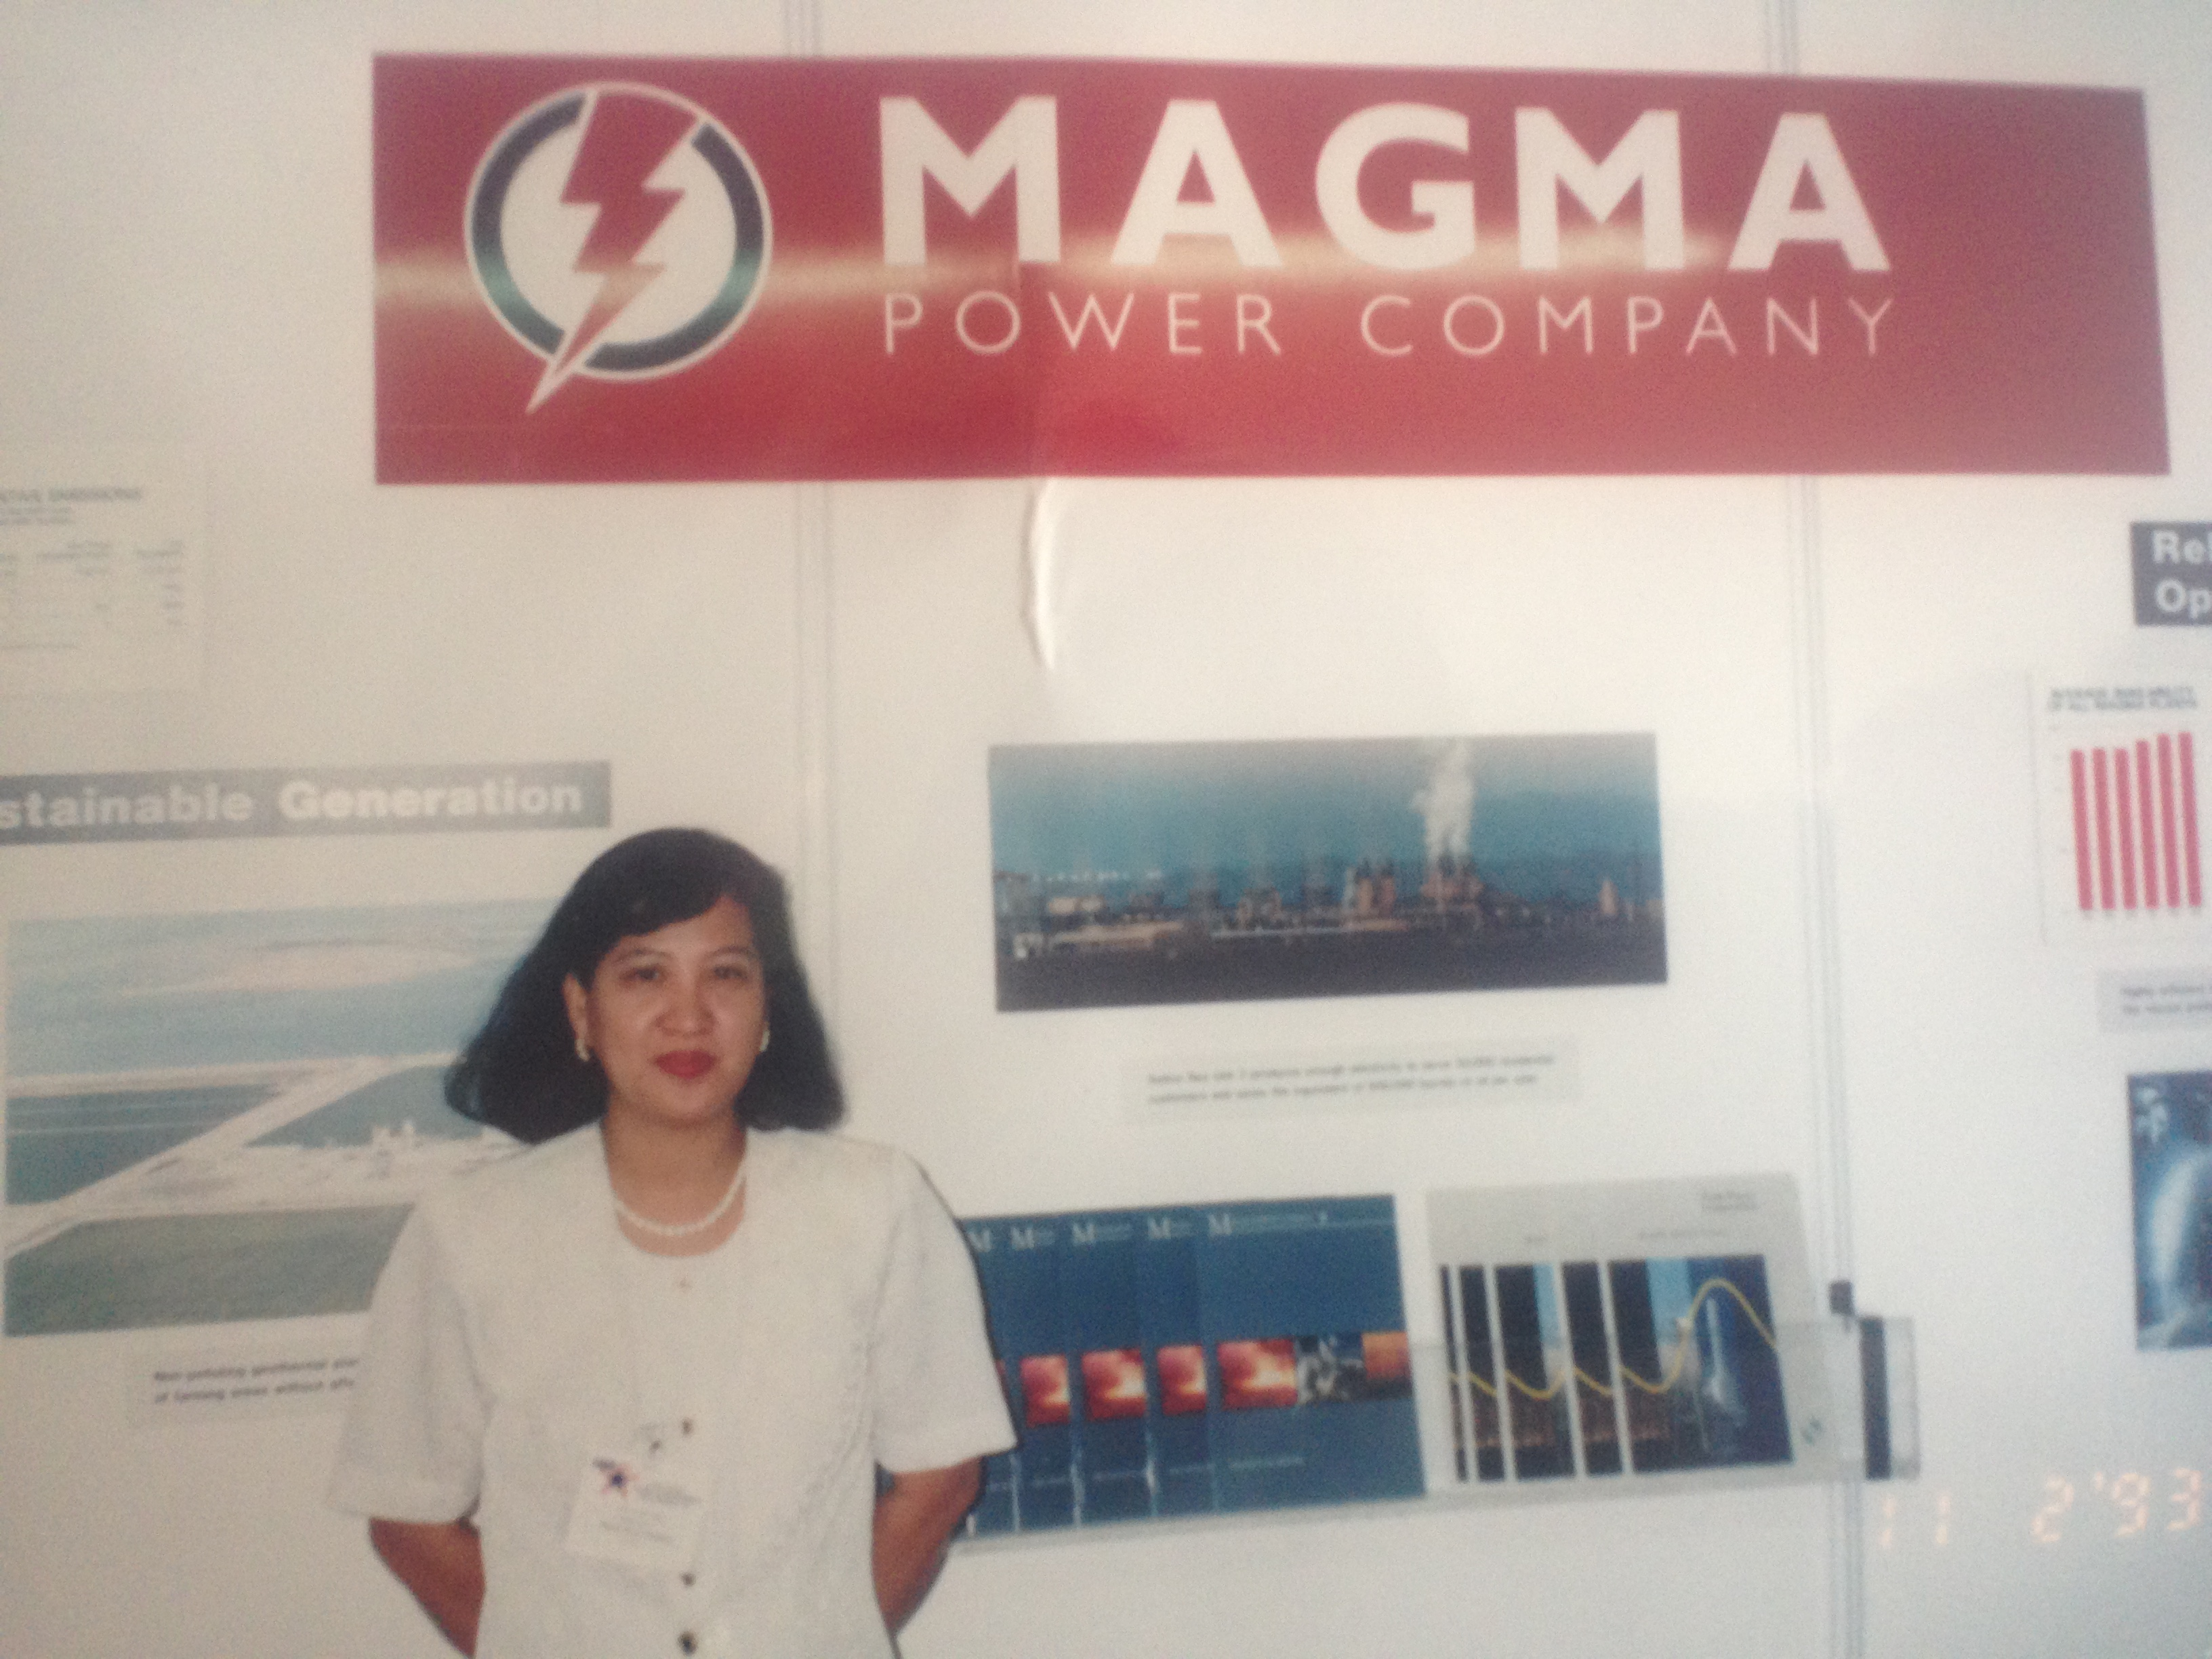 Elena G. Macario in the 1993 Energy Exposition in Manila, manning the booth of Magma Power Company. During the exhibition, US Ambassador John Negropointe visited Magma Power's booth and even posed for a photo with Elena.